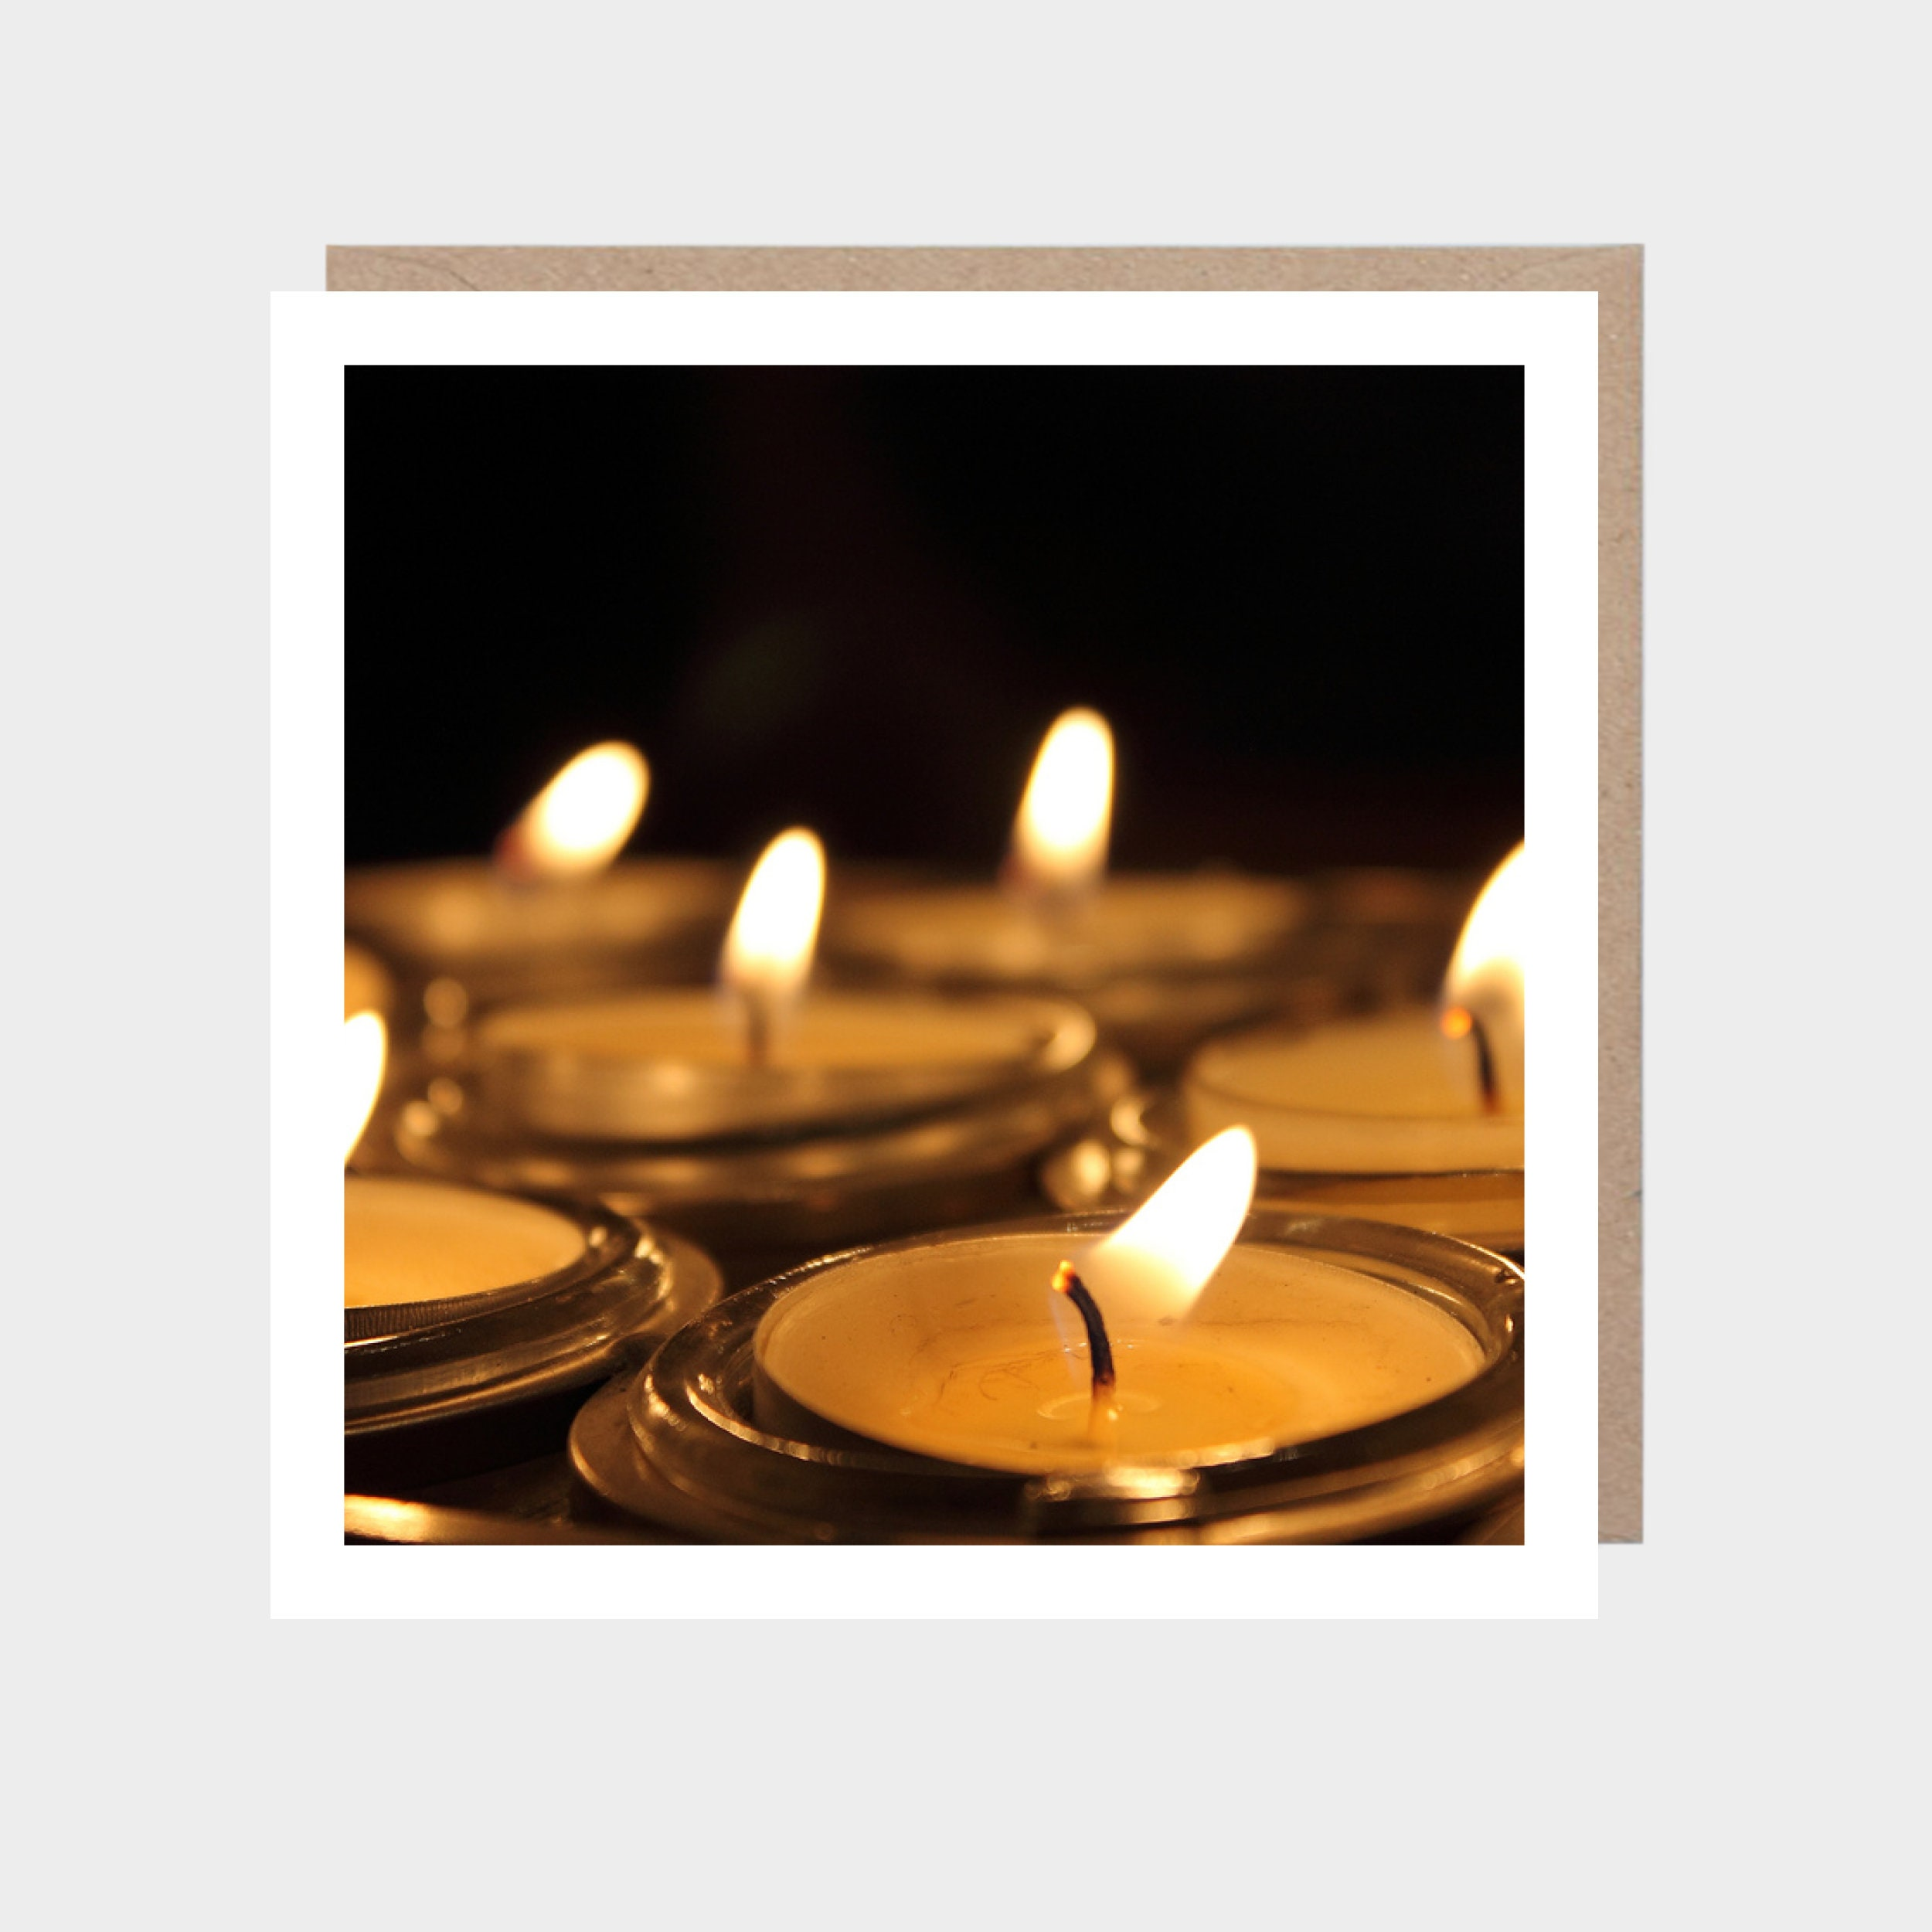 Square card with a close-up photo of lit tealight flames, with a brown kraft envelope